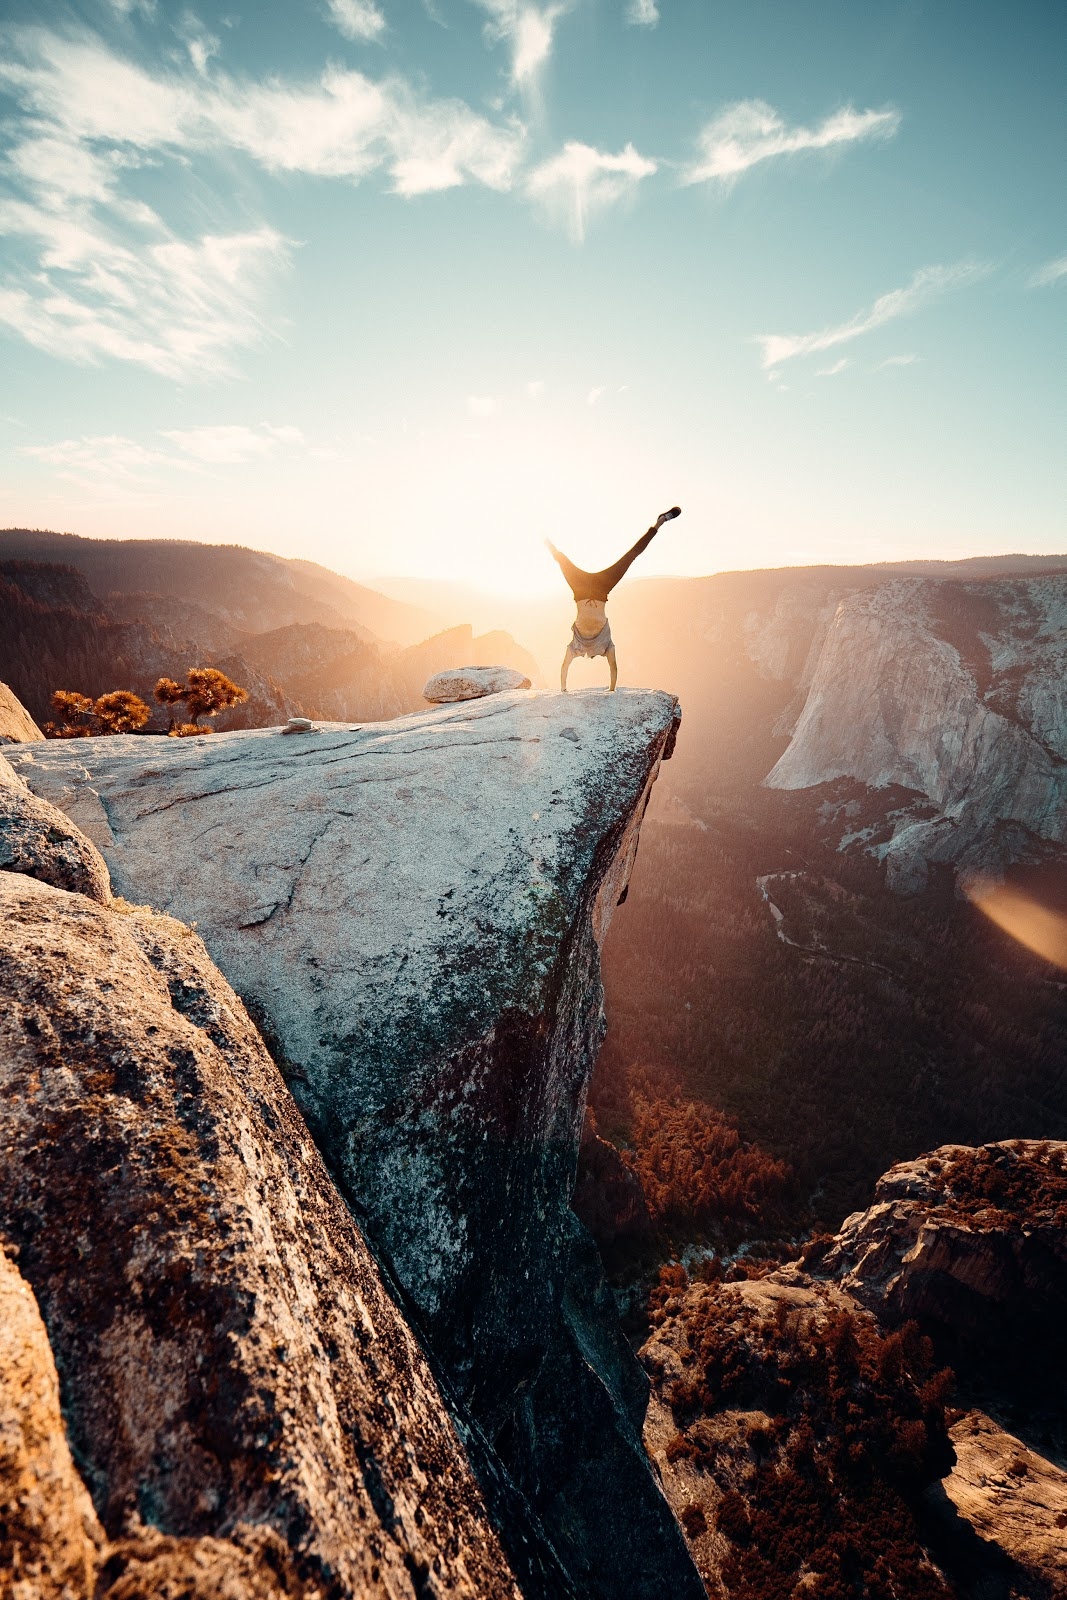 man doing handstand on the edge of a cliff with the sunset in the background